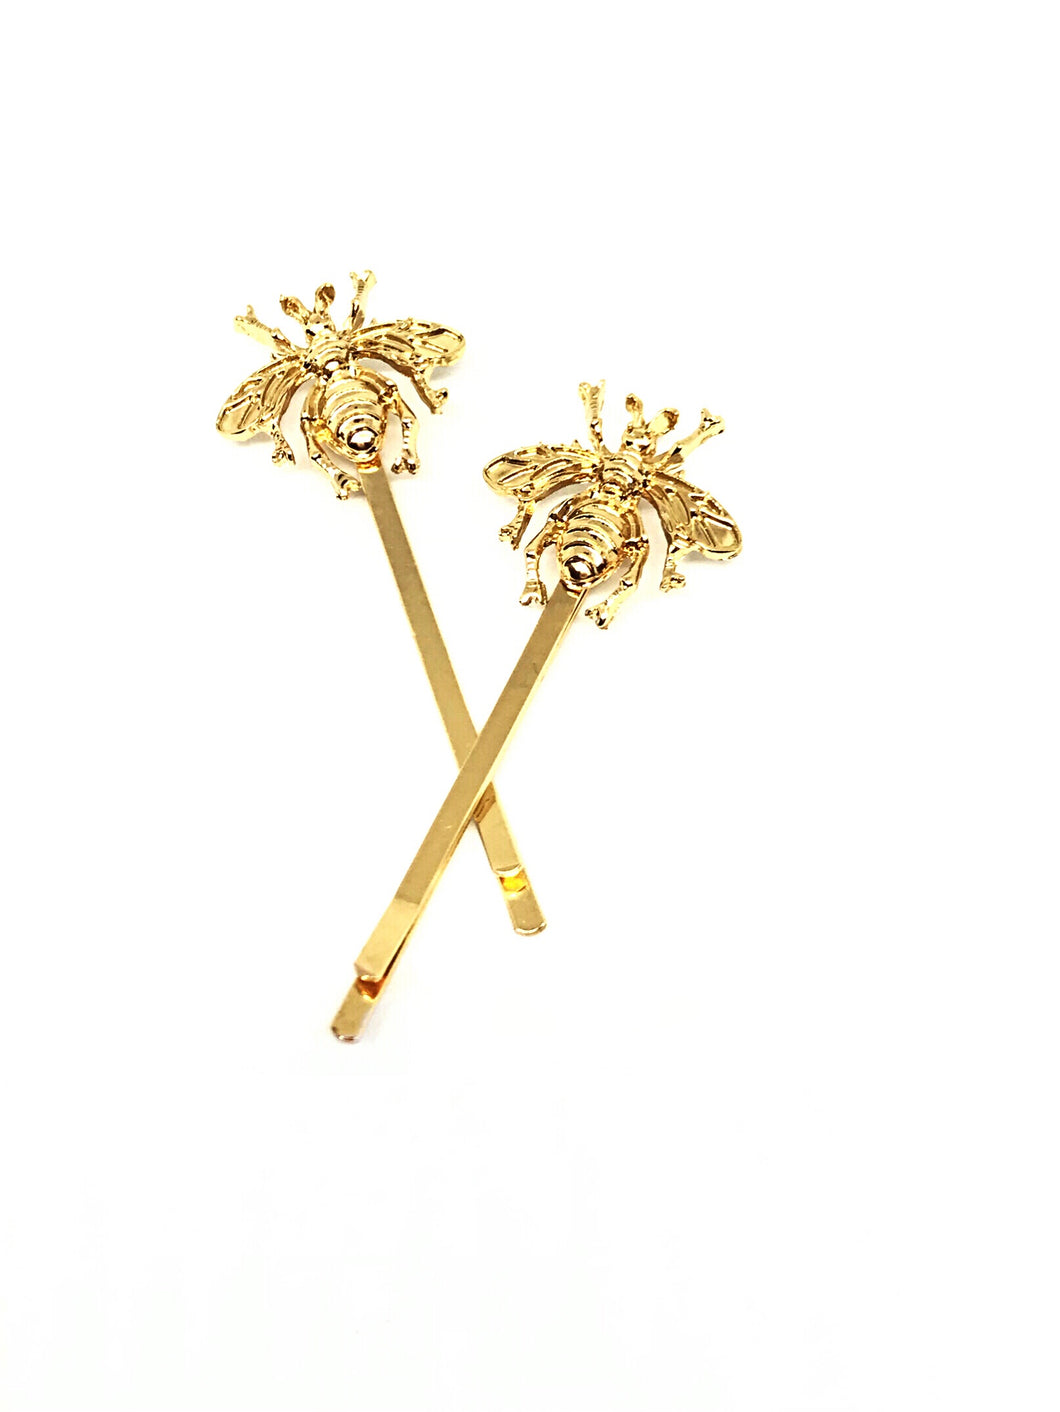 Golden Buzz Bee Hairpin 2 per set